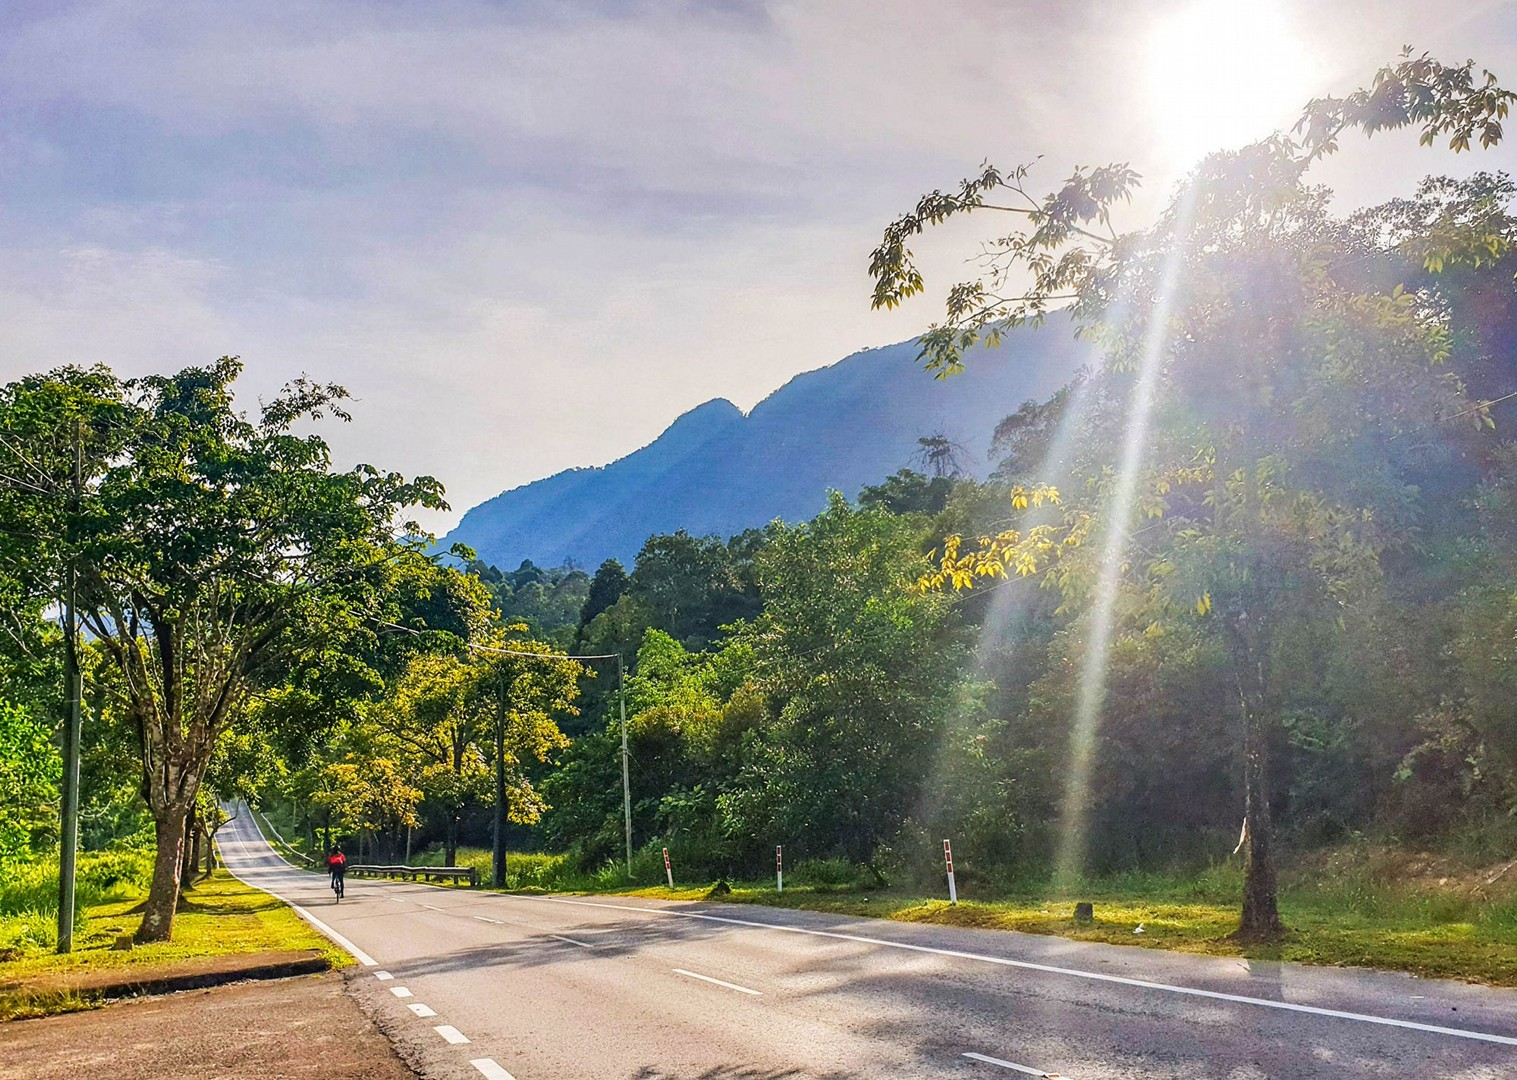 cycling-road-borneo-holiday-saddle-skedaddle-trip.jpg - Borneo - Sarawak to Sabah - Guided Road Cycling Holiday - Road Cycling